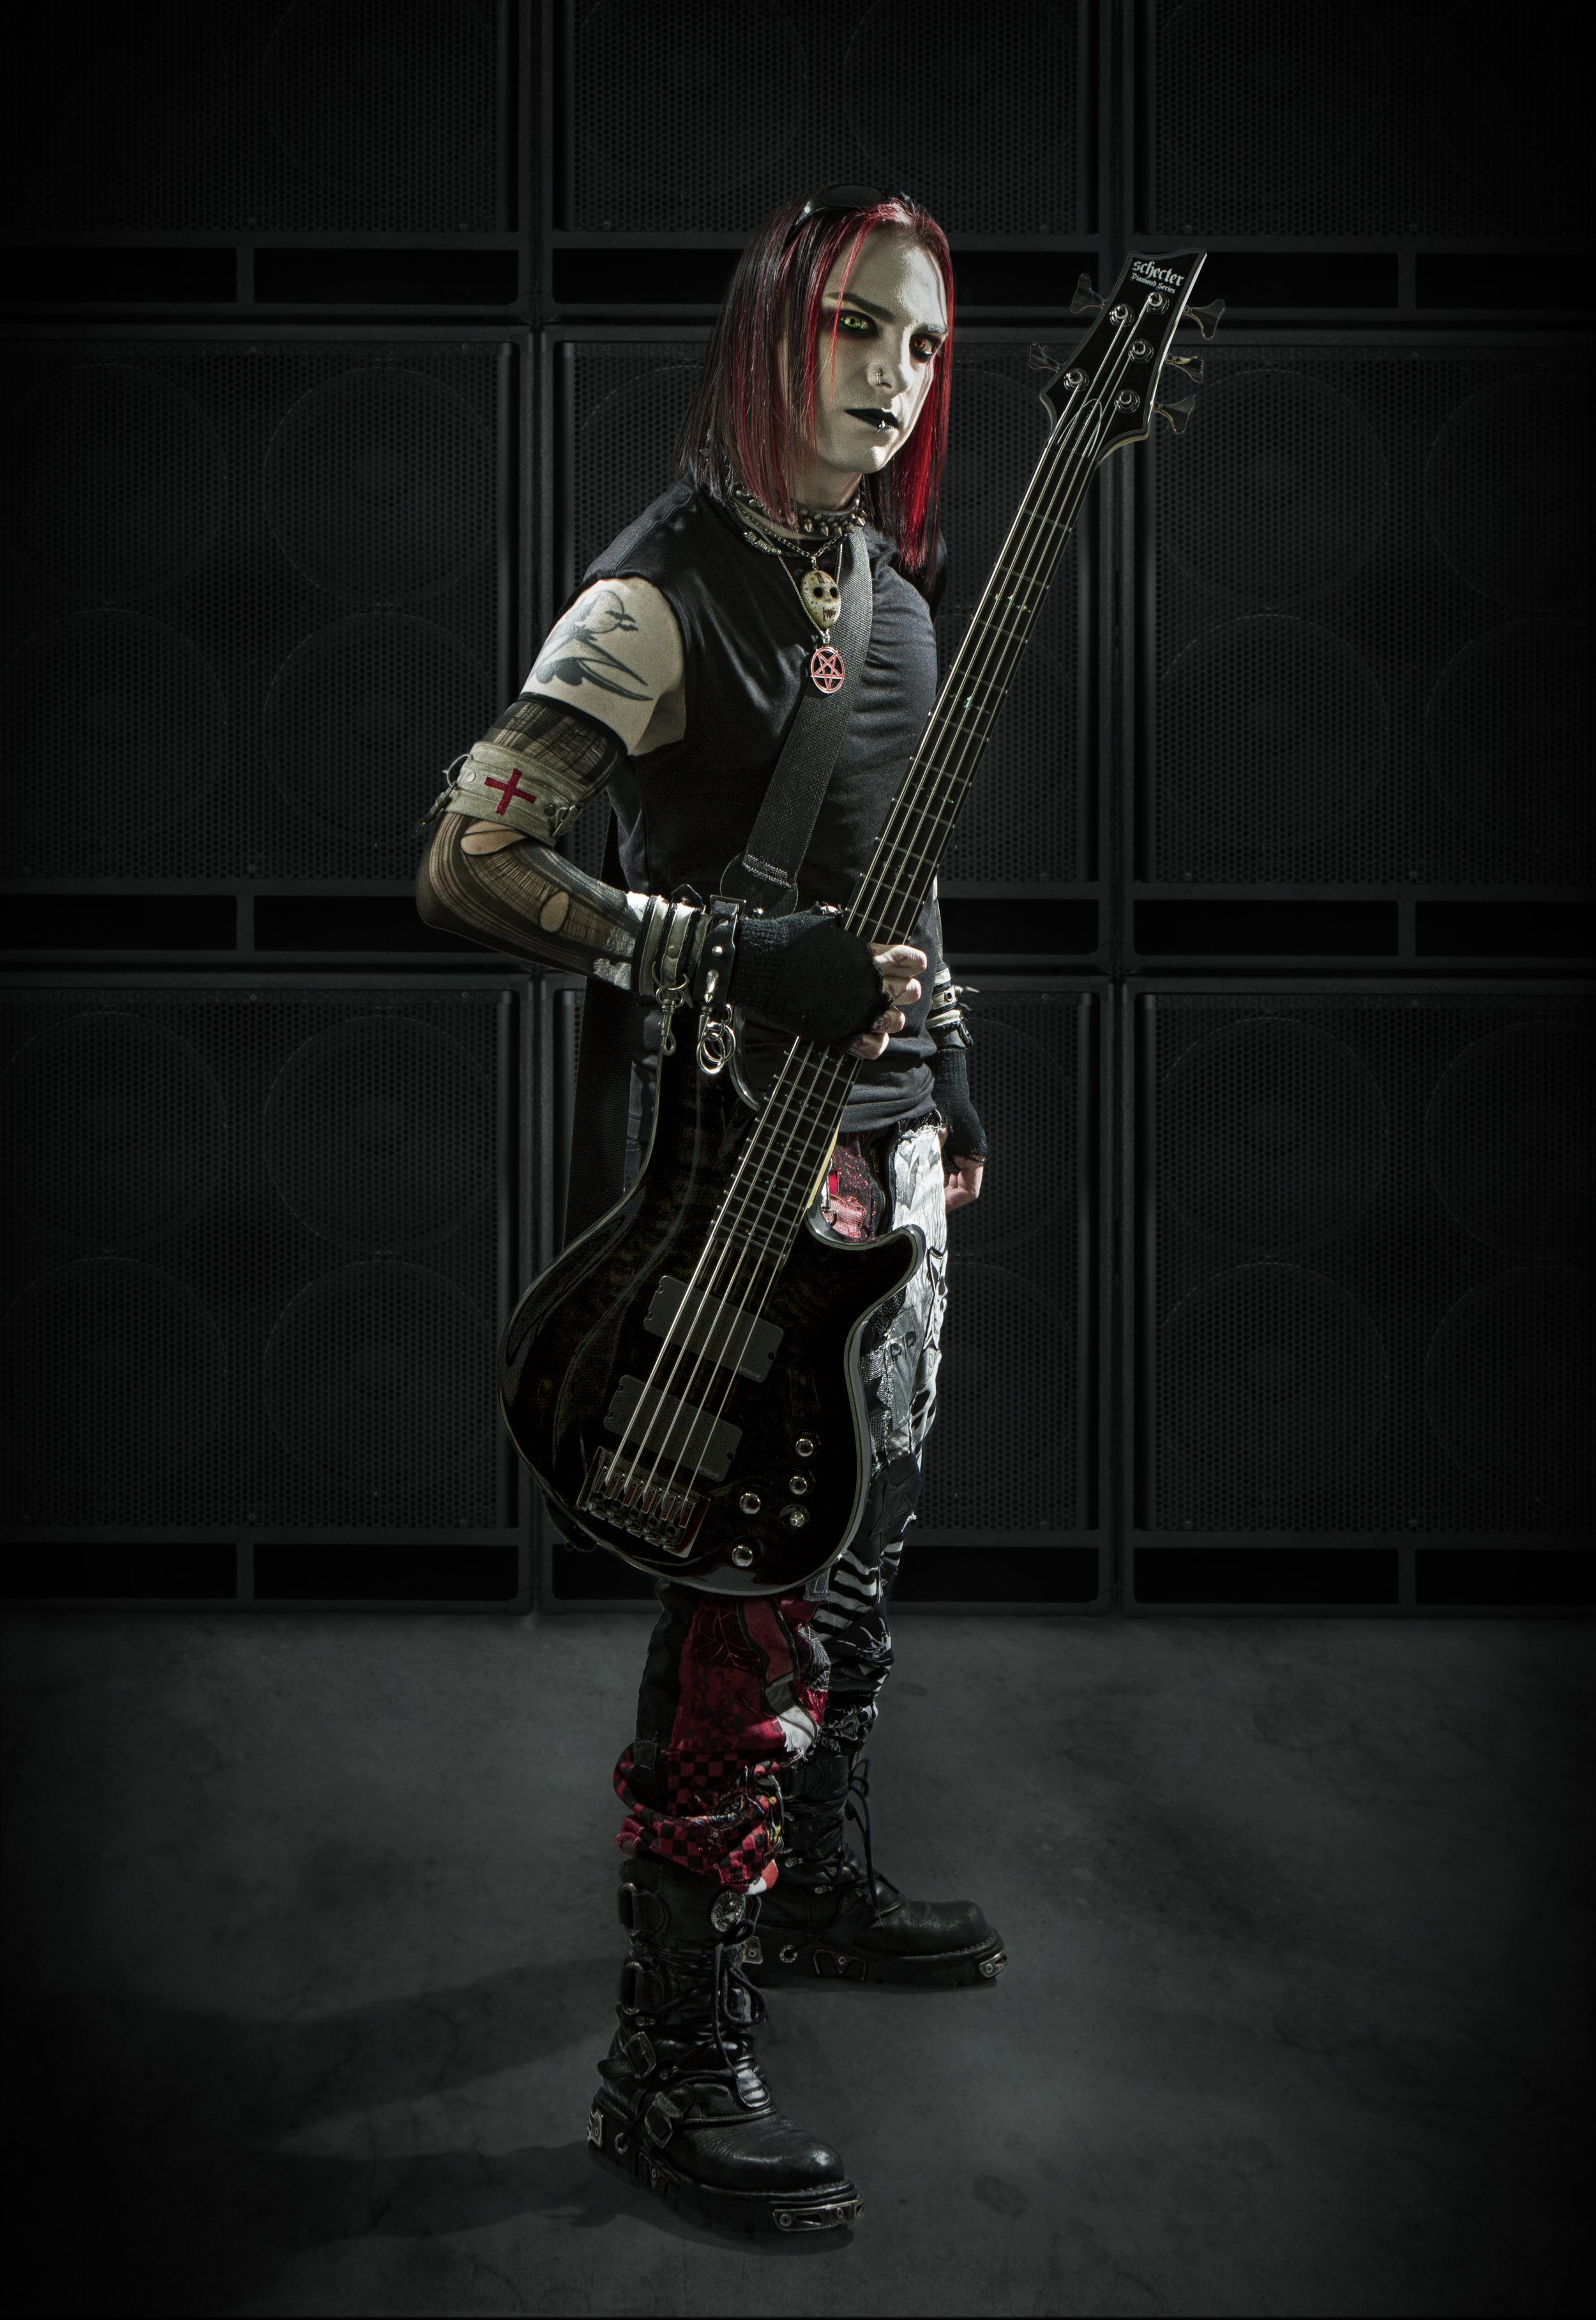 IMG_0146_SCHECTER_THEDRO_PR.jpg